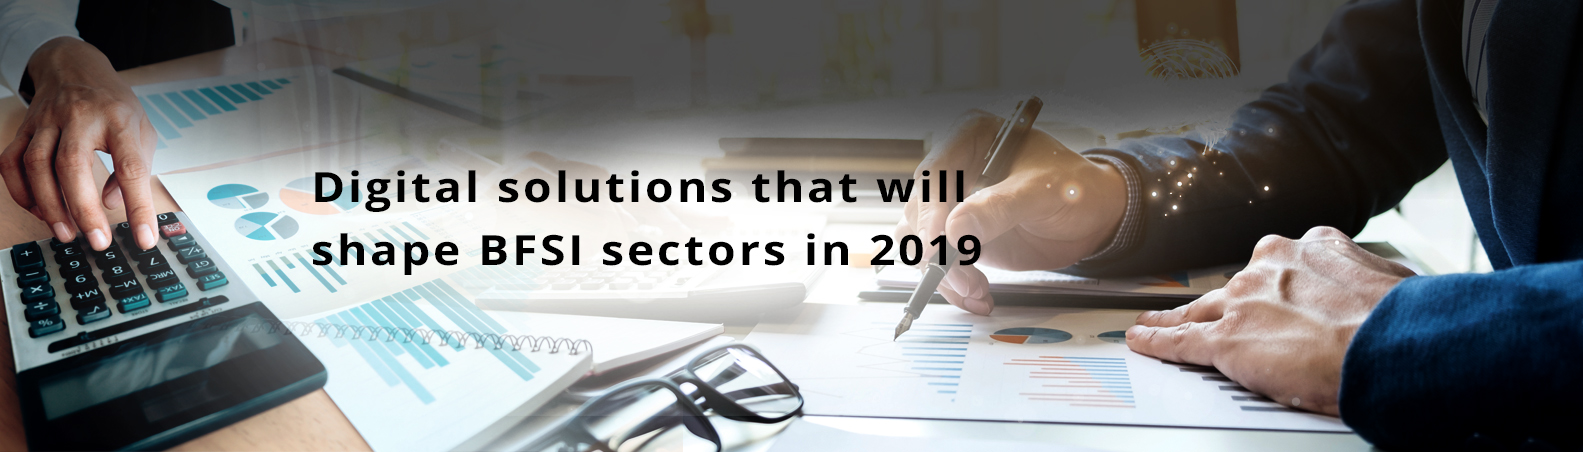 Digital Solutions That Will Shape BFSI Sectors in 2019